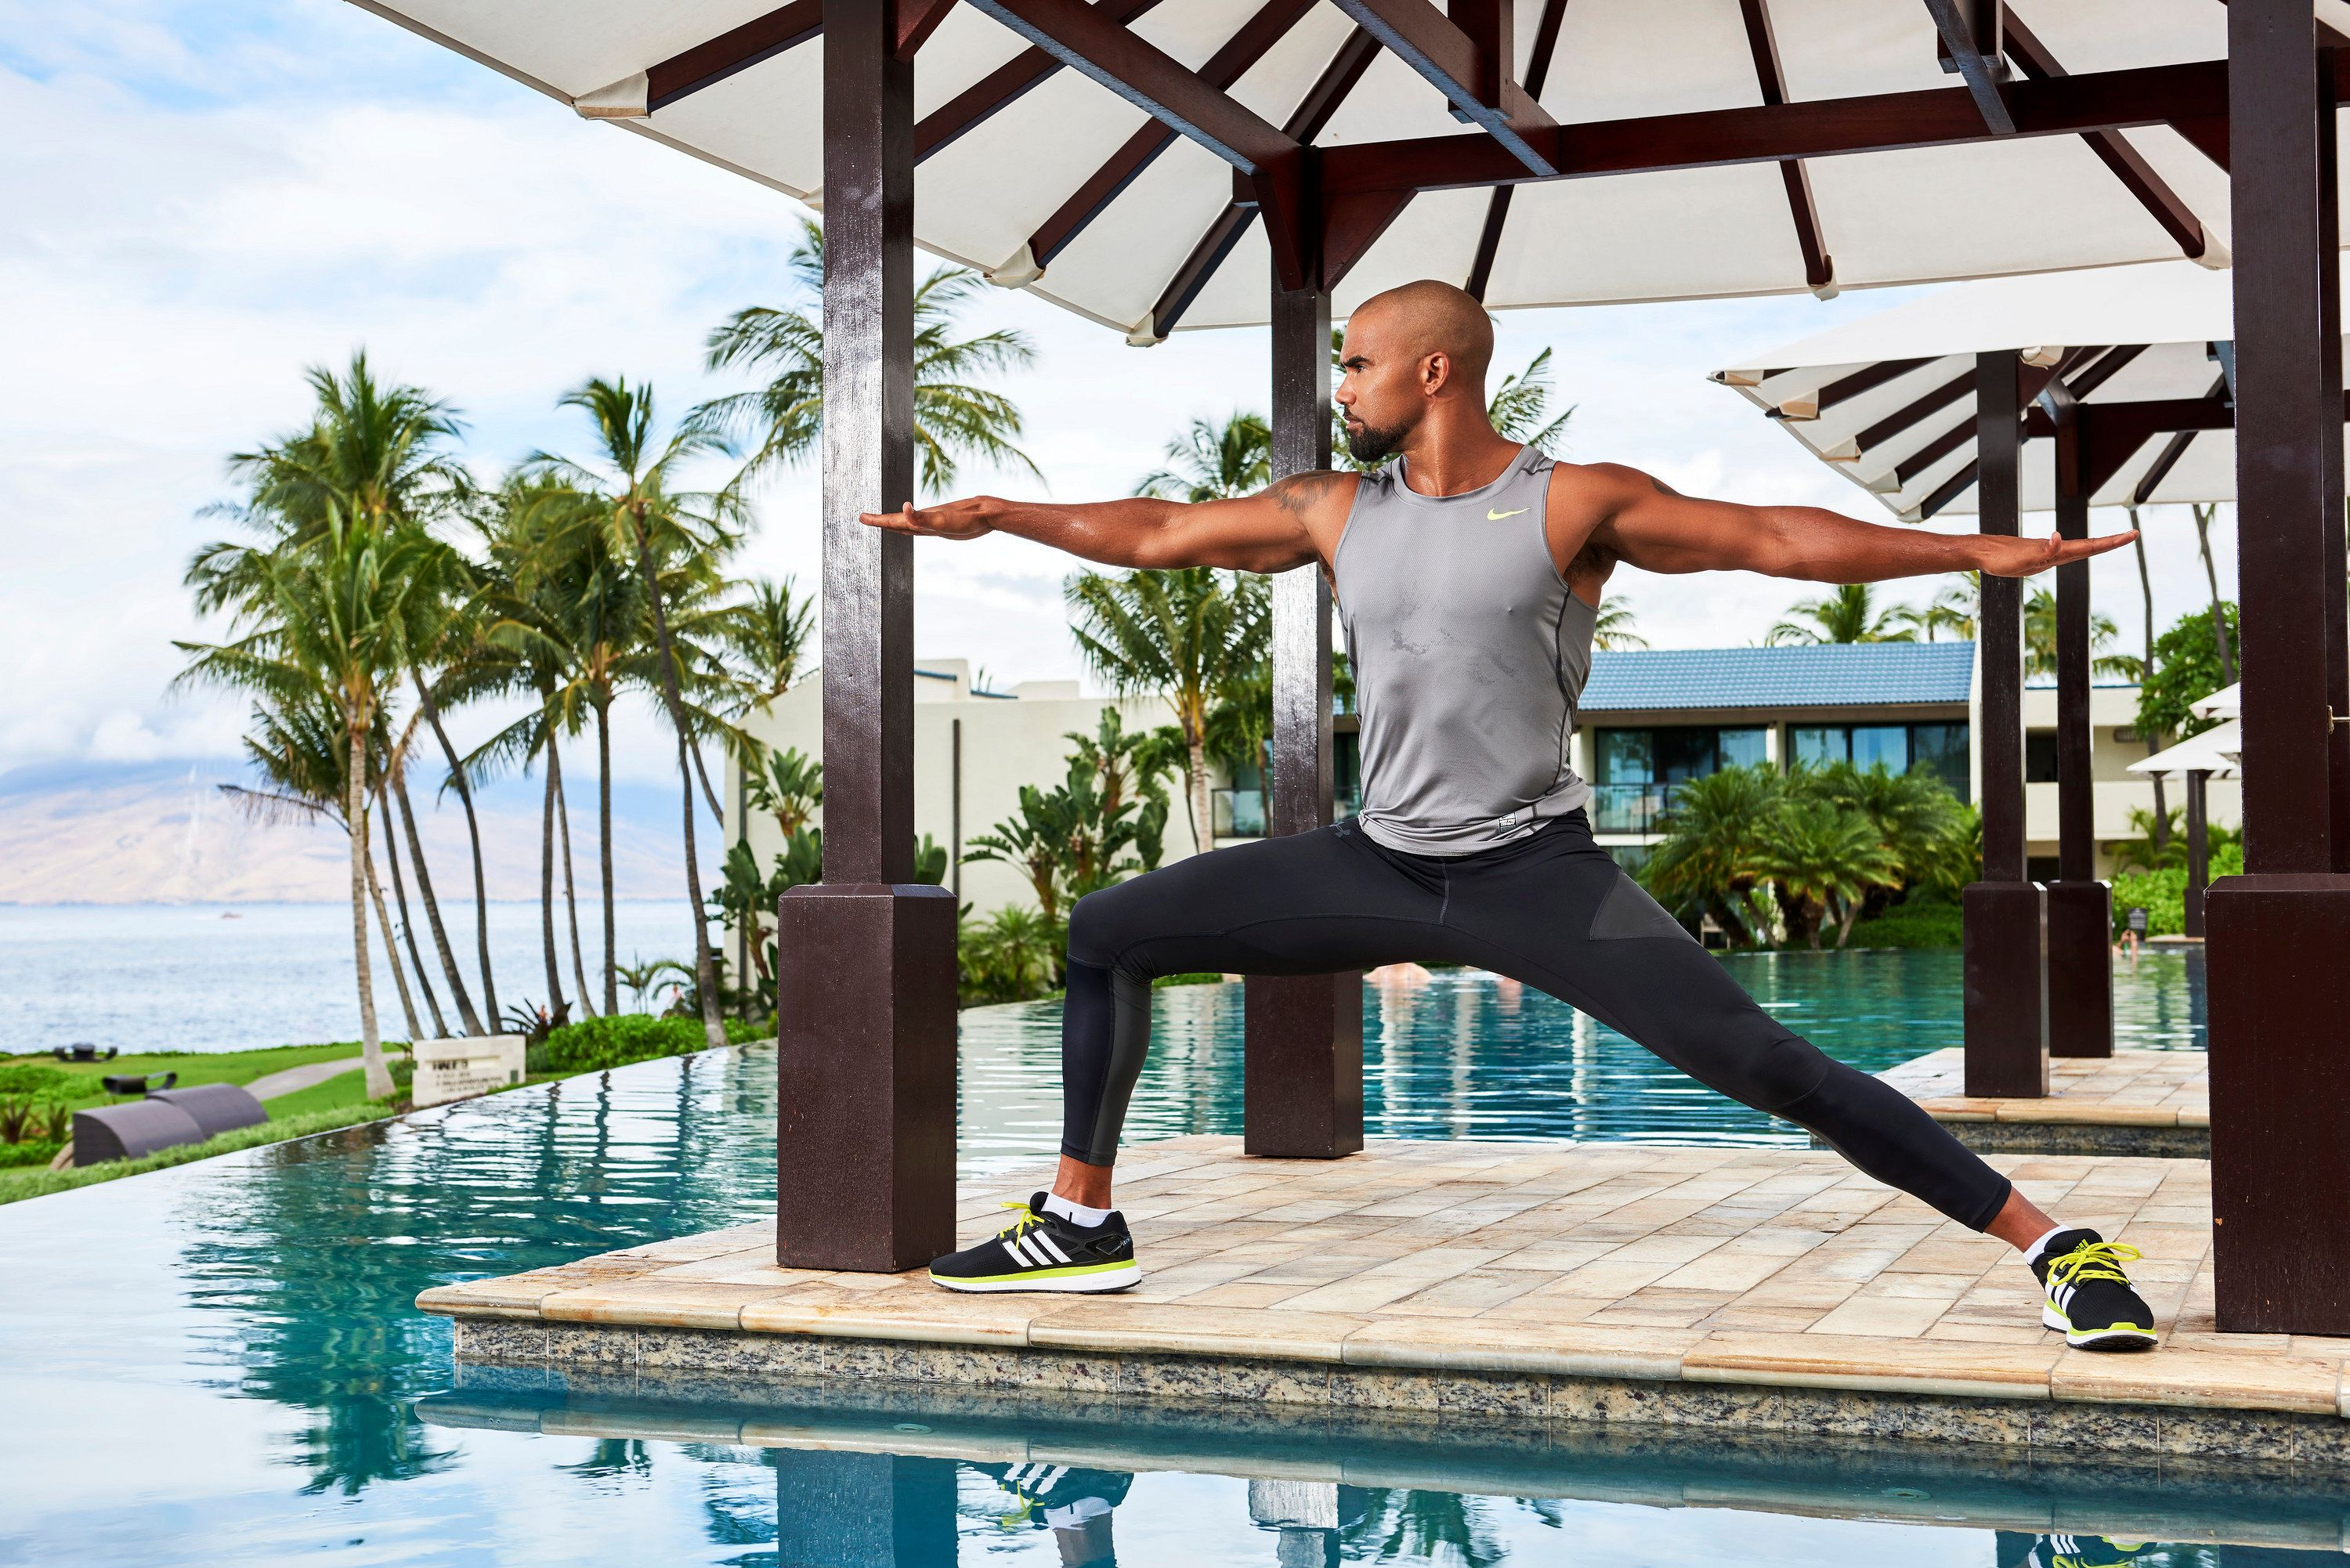 Shemar Moore strikes the yoga warrior pose as he stretches at a private hotel pool